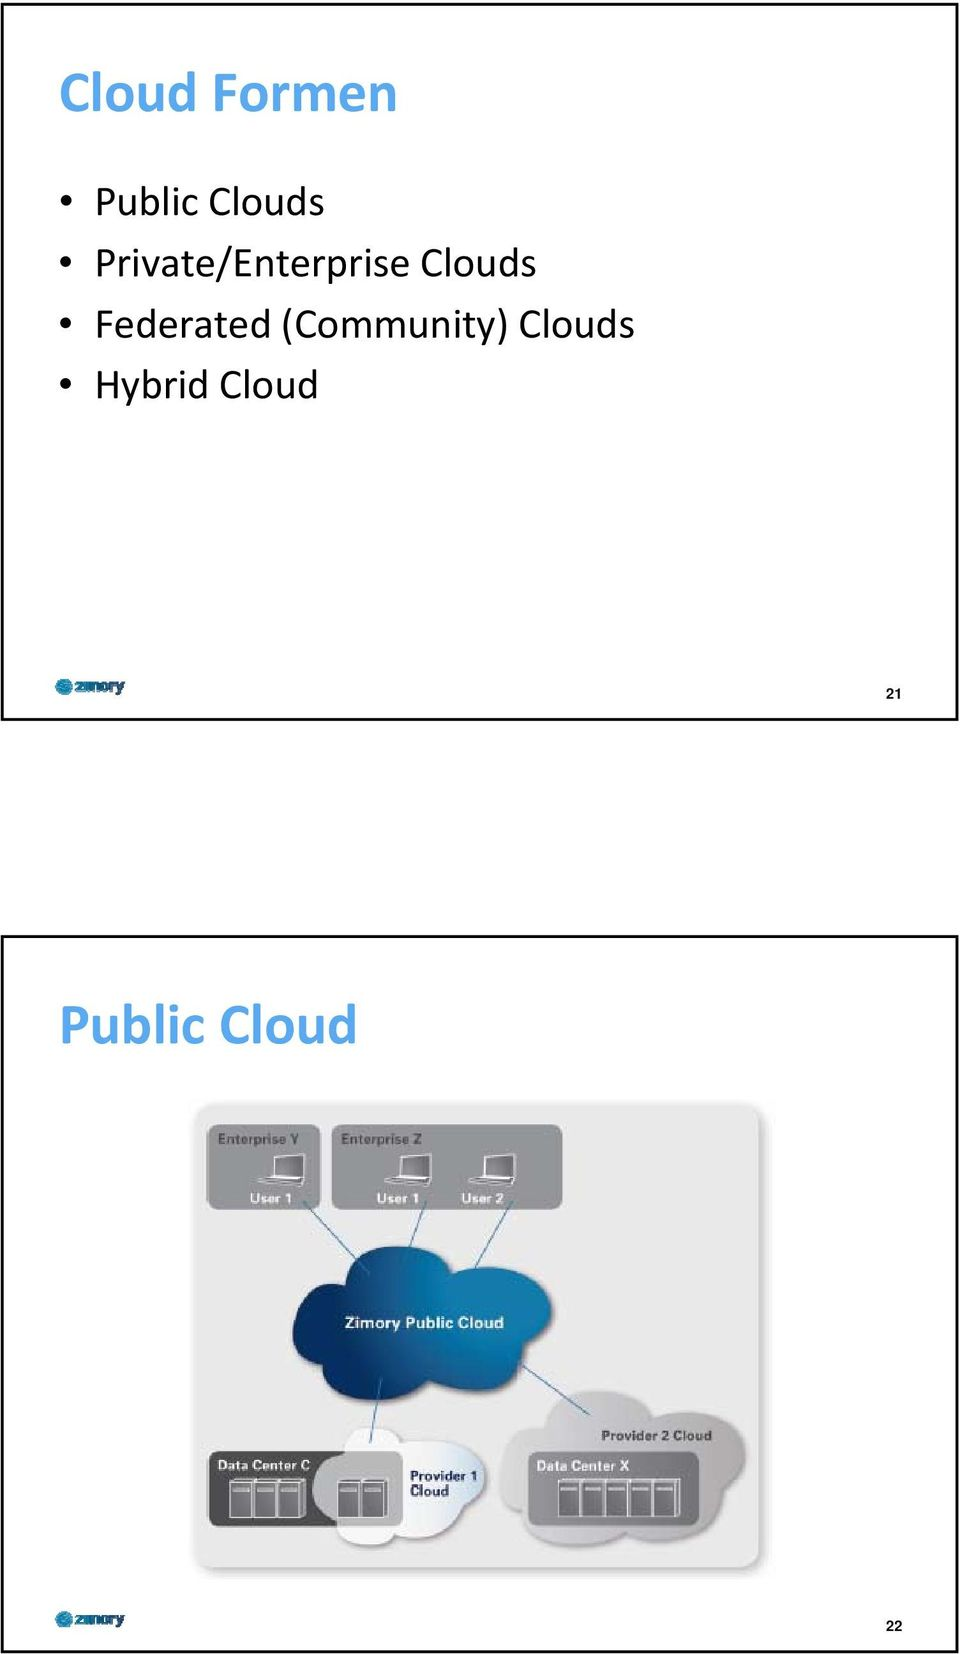 Federated (Community) Clouds